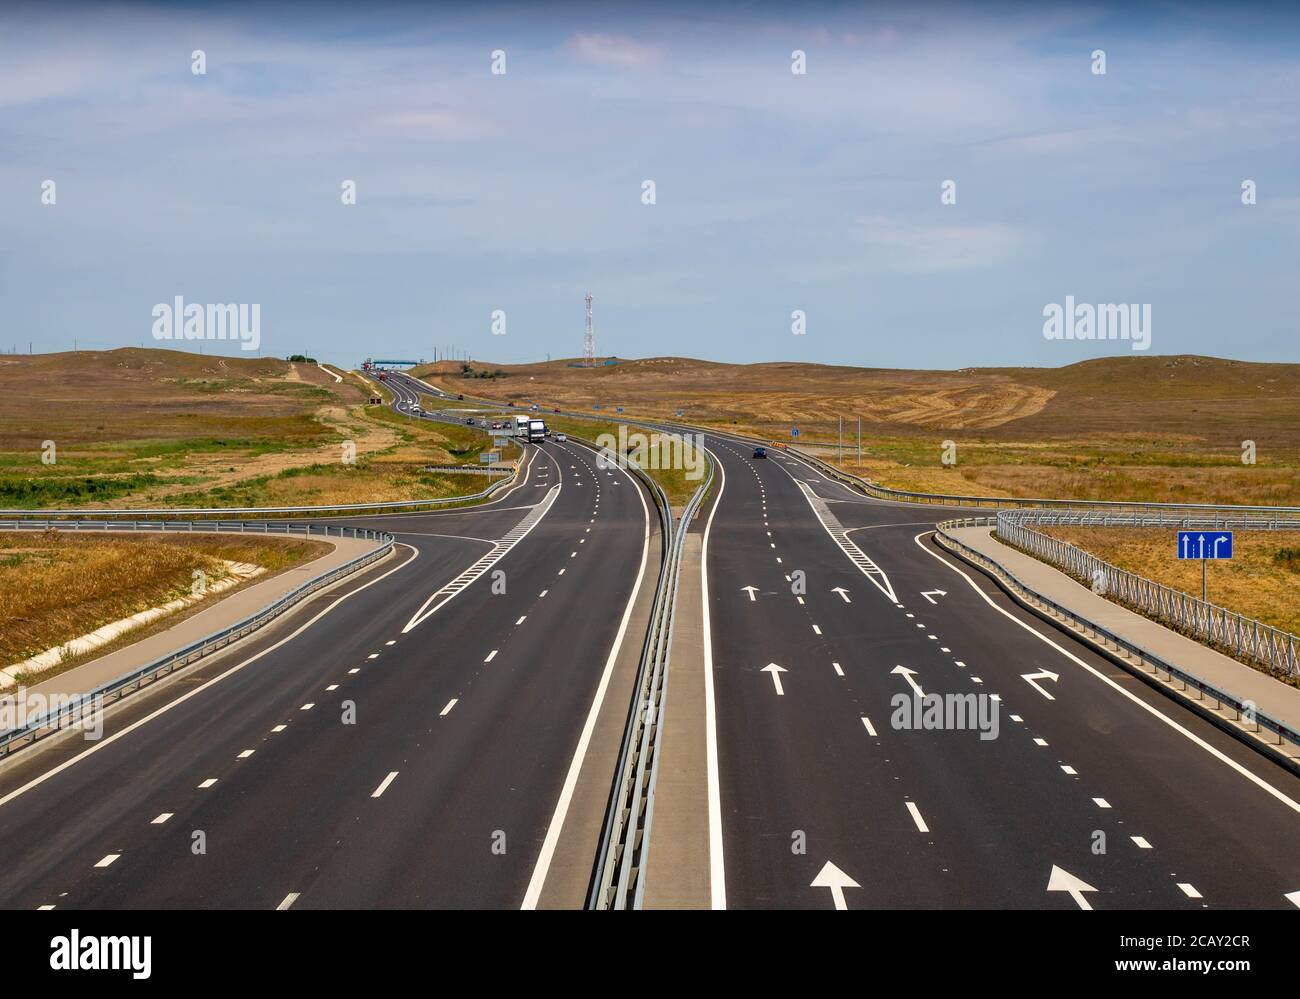 highway in steppe against a blue sky,long road stretching out into the distance Stock Photo